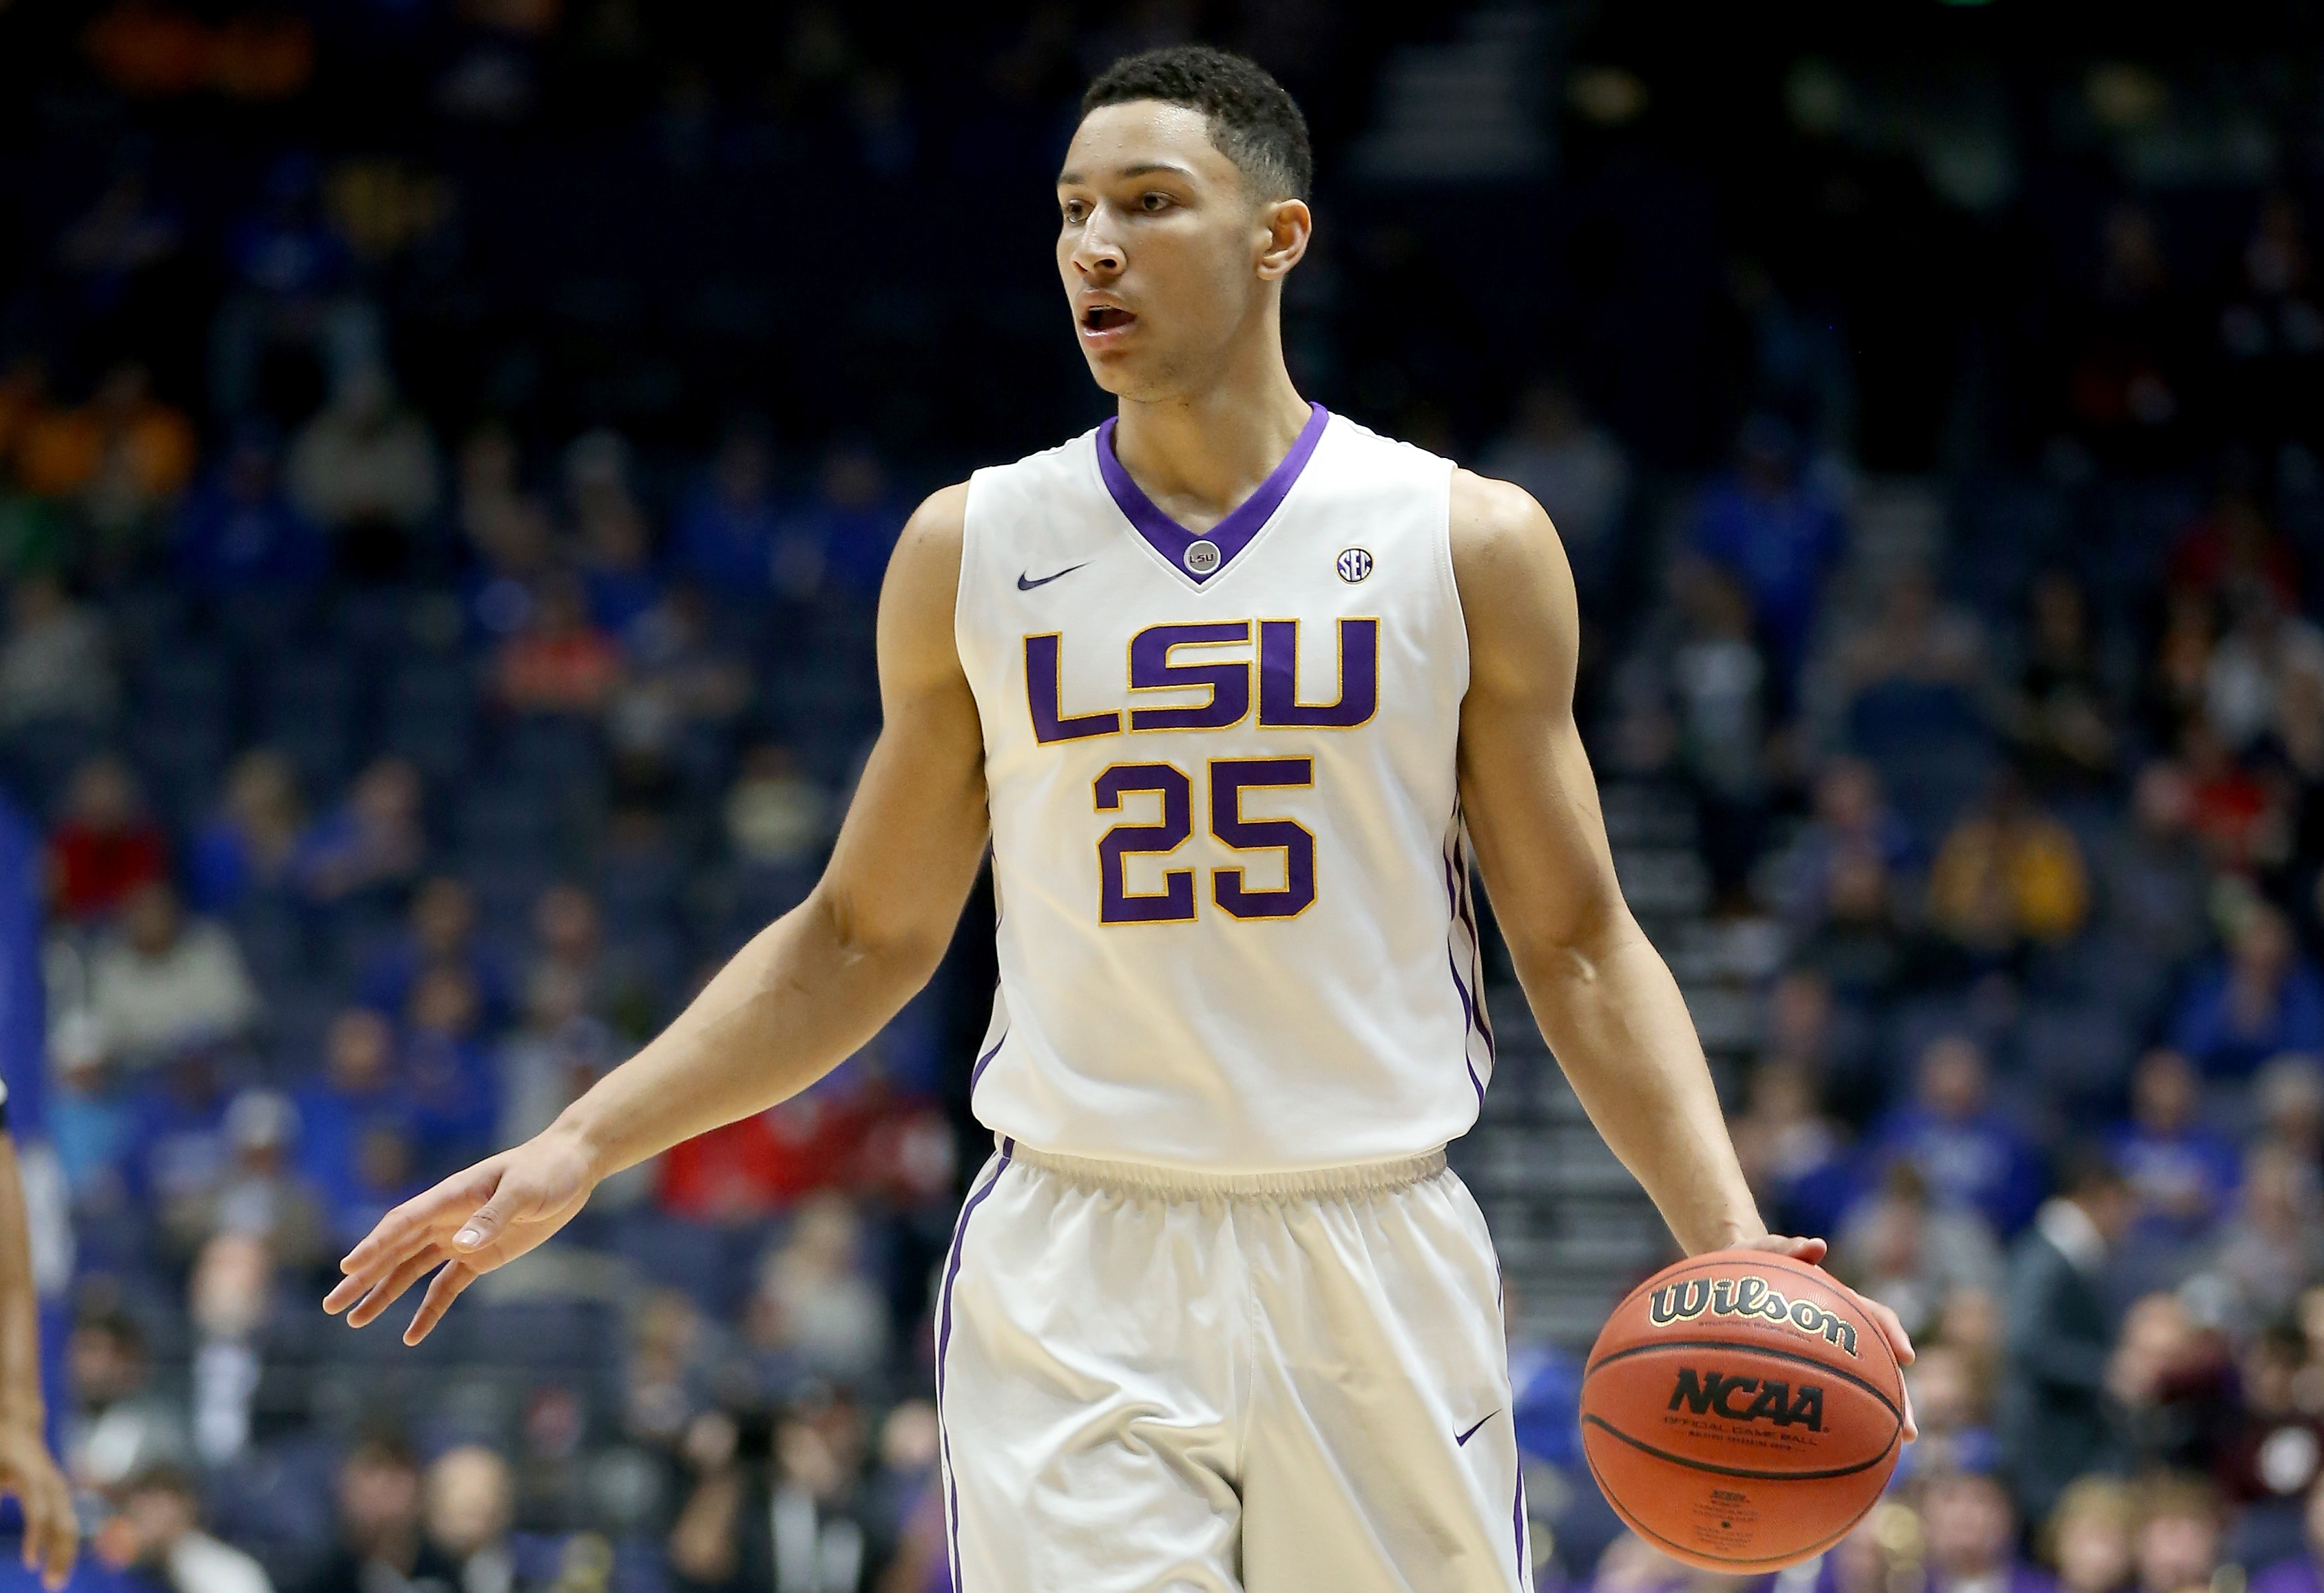 NBA Draft Lottery 2016: Date, Odds For Lakers, Sixers, Celtics And ...